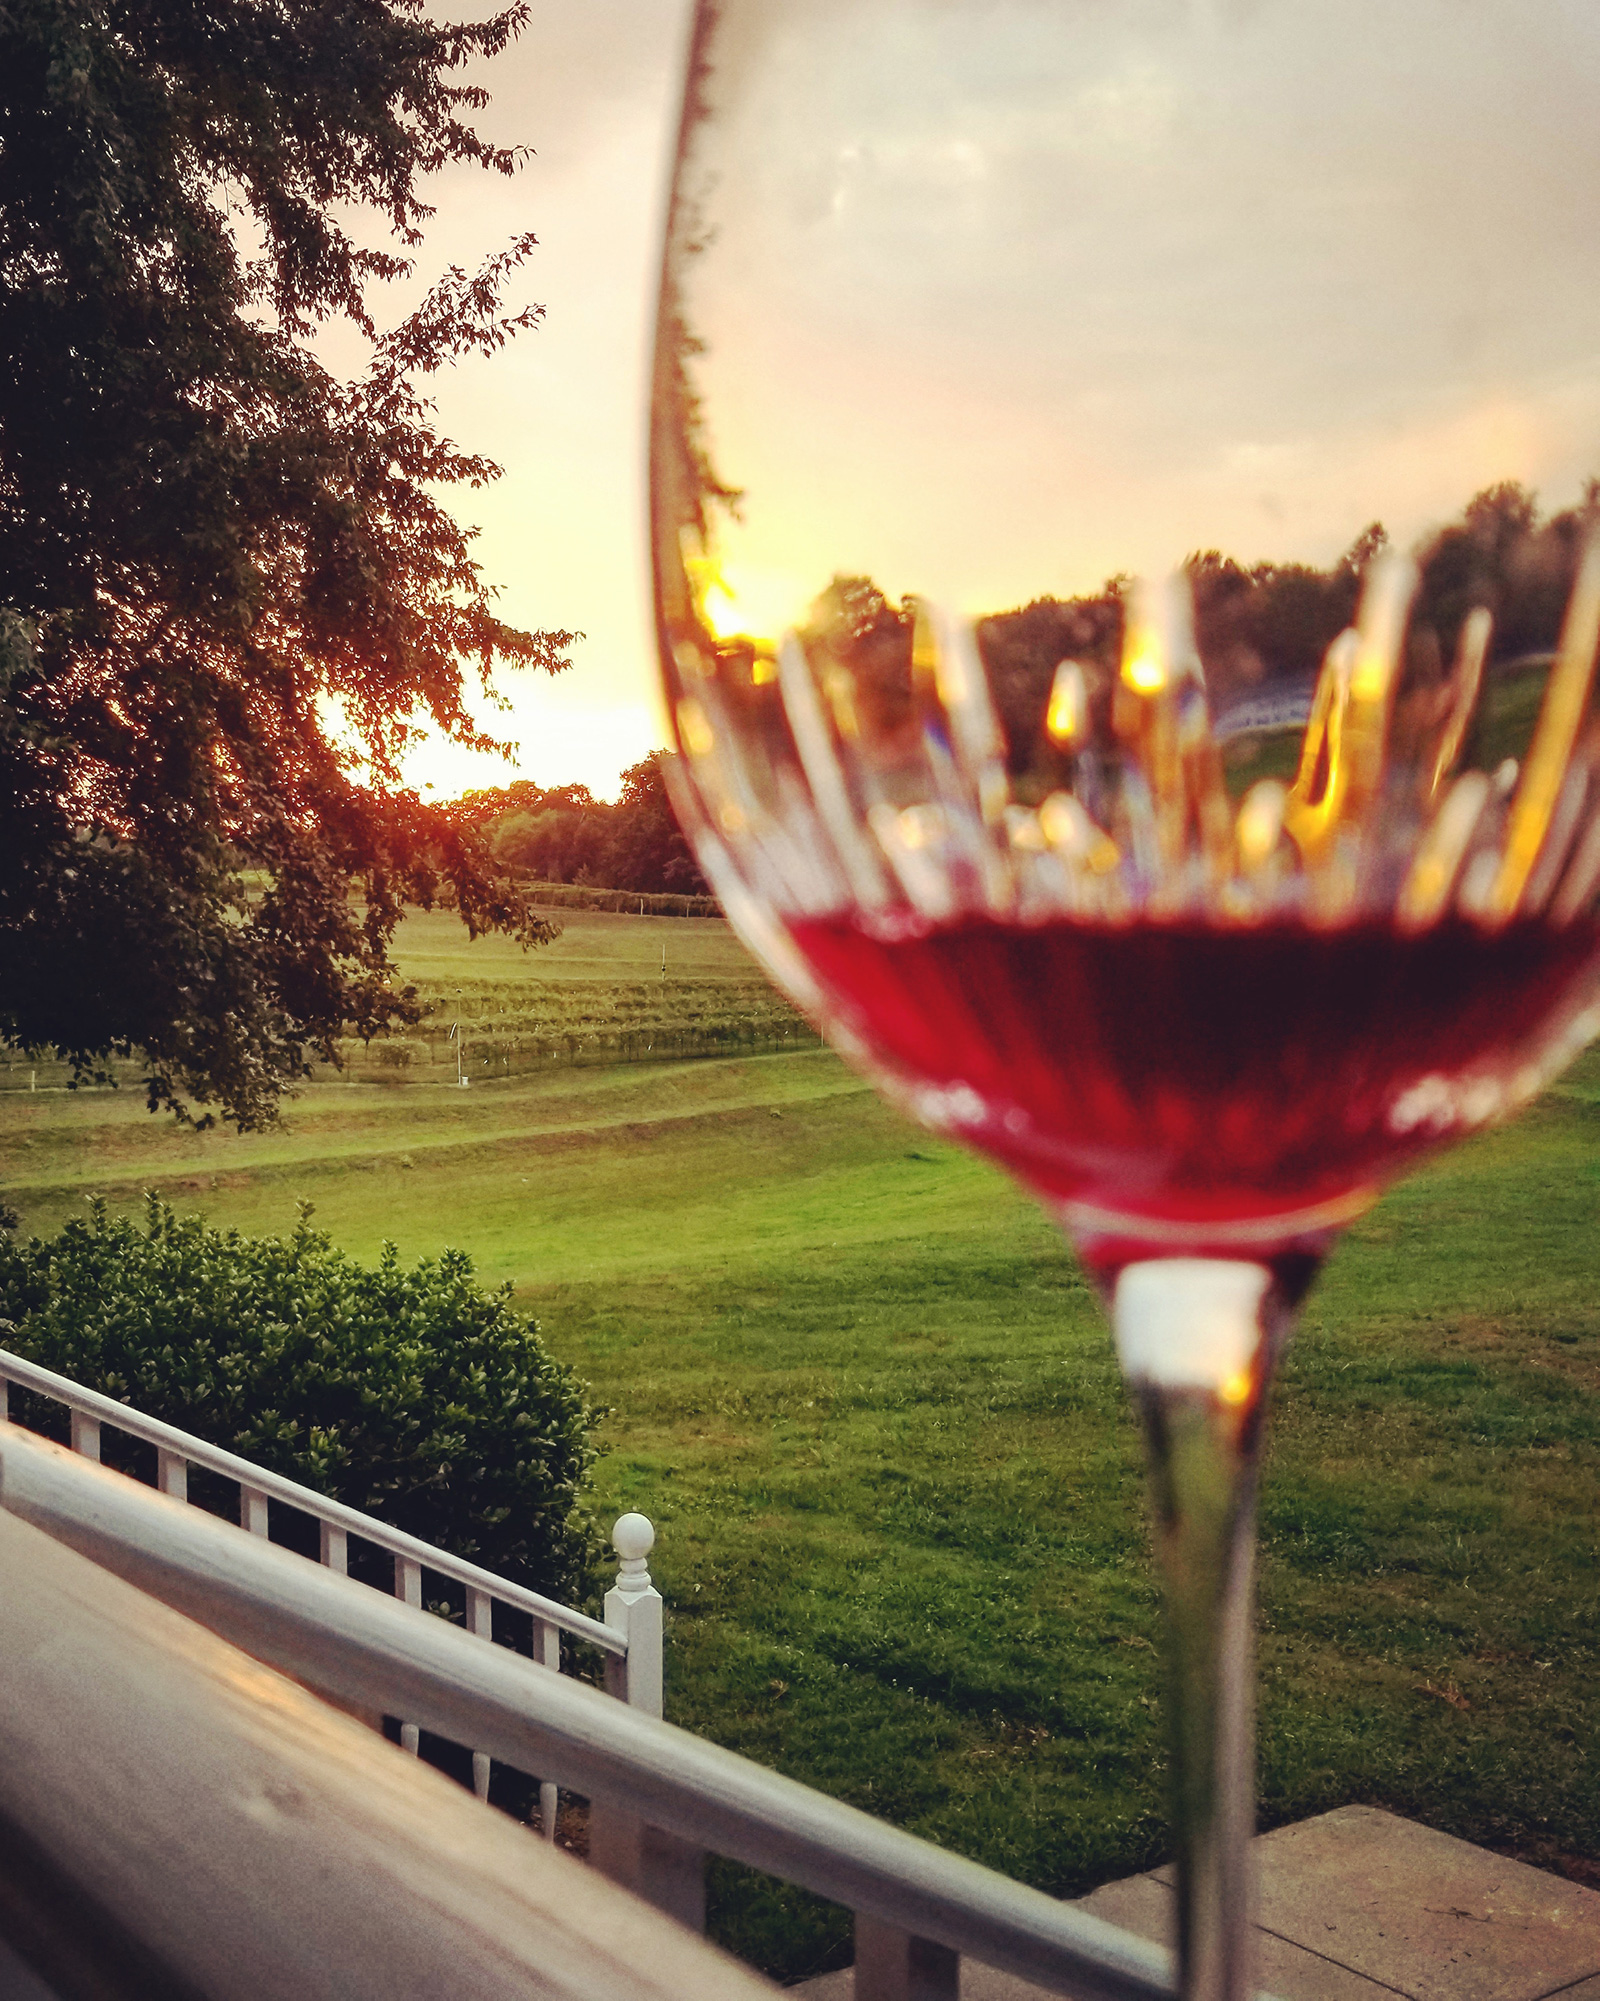 Glass of red wine on a porch